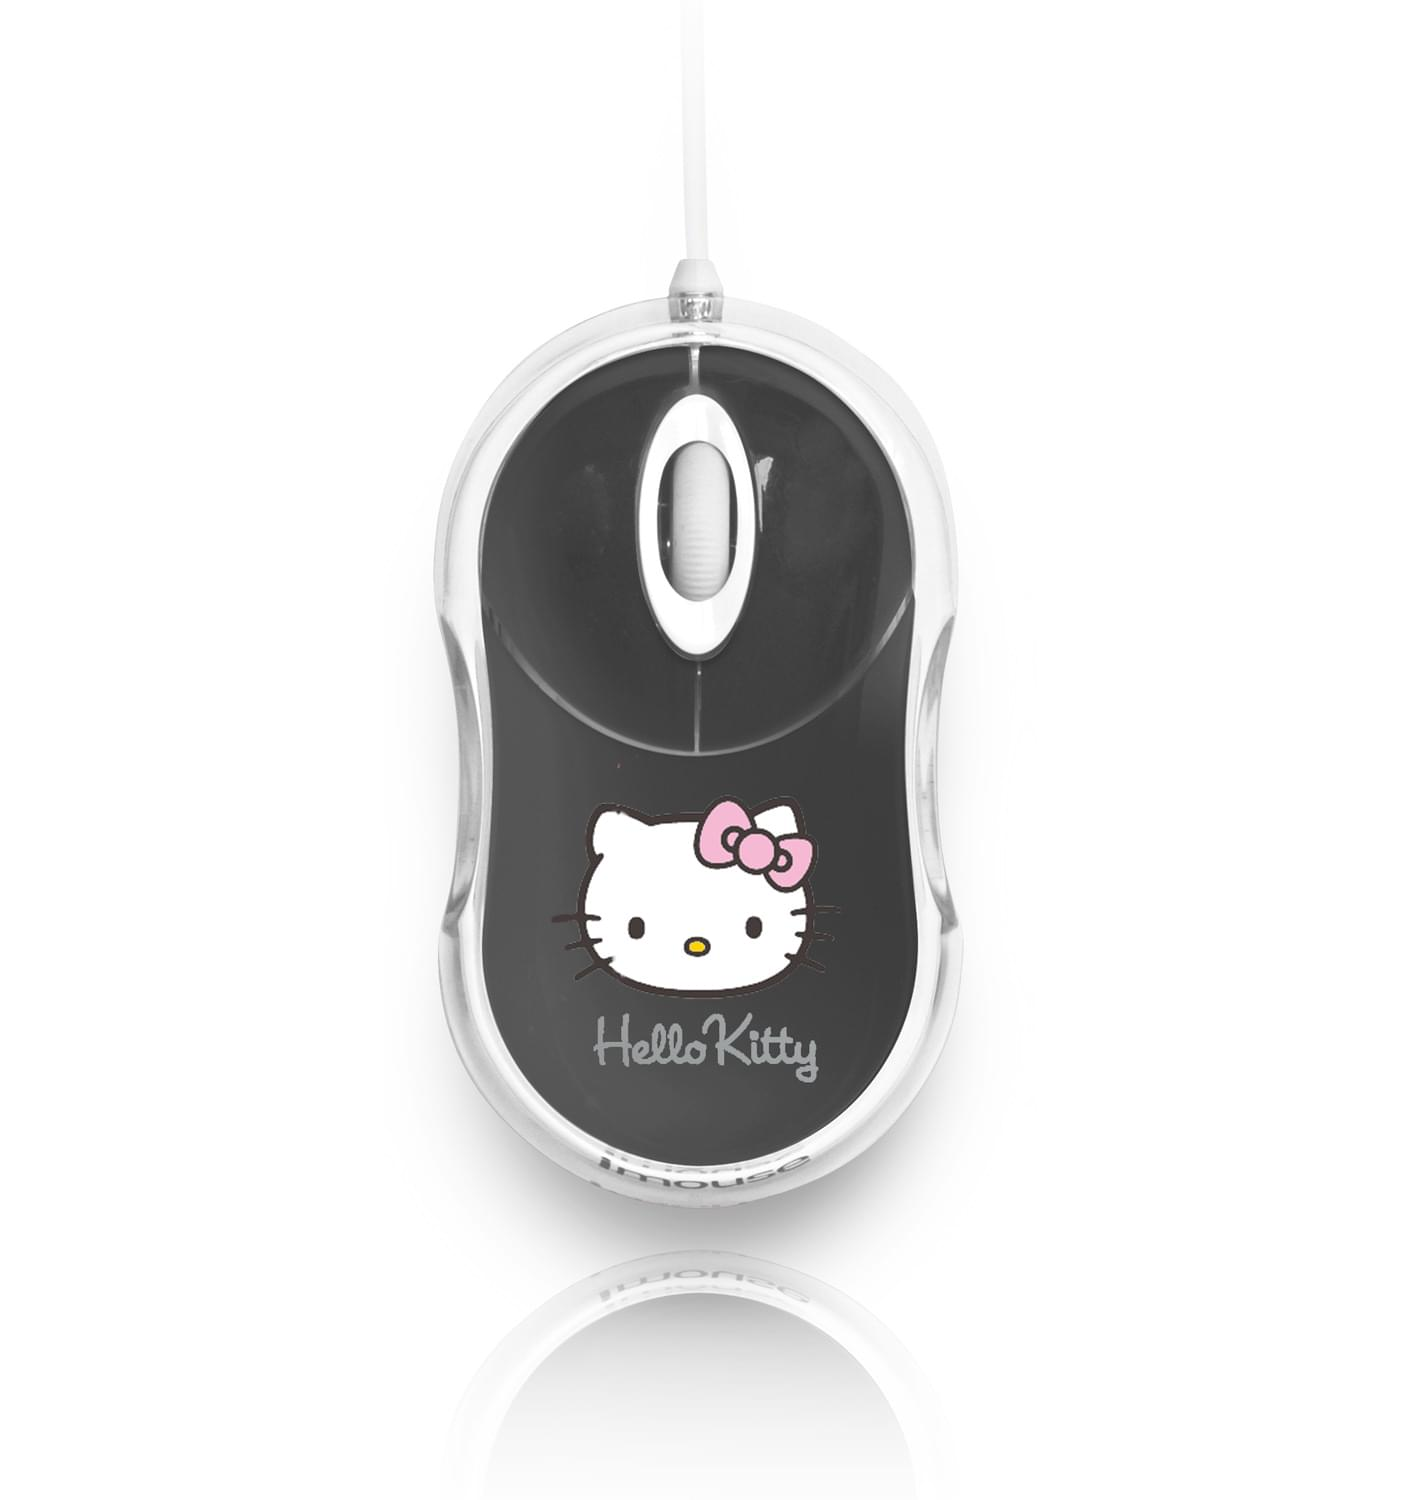 Souris PC Bluestork Bumpy Hello Kitty Gris - 0